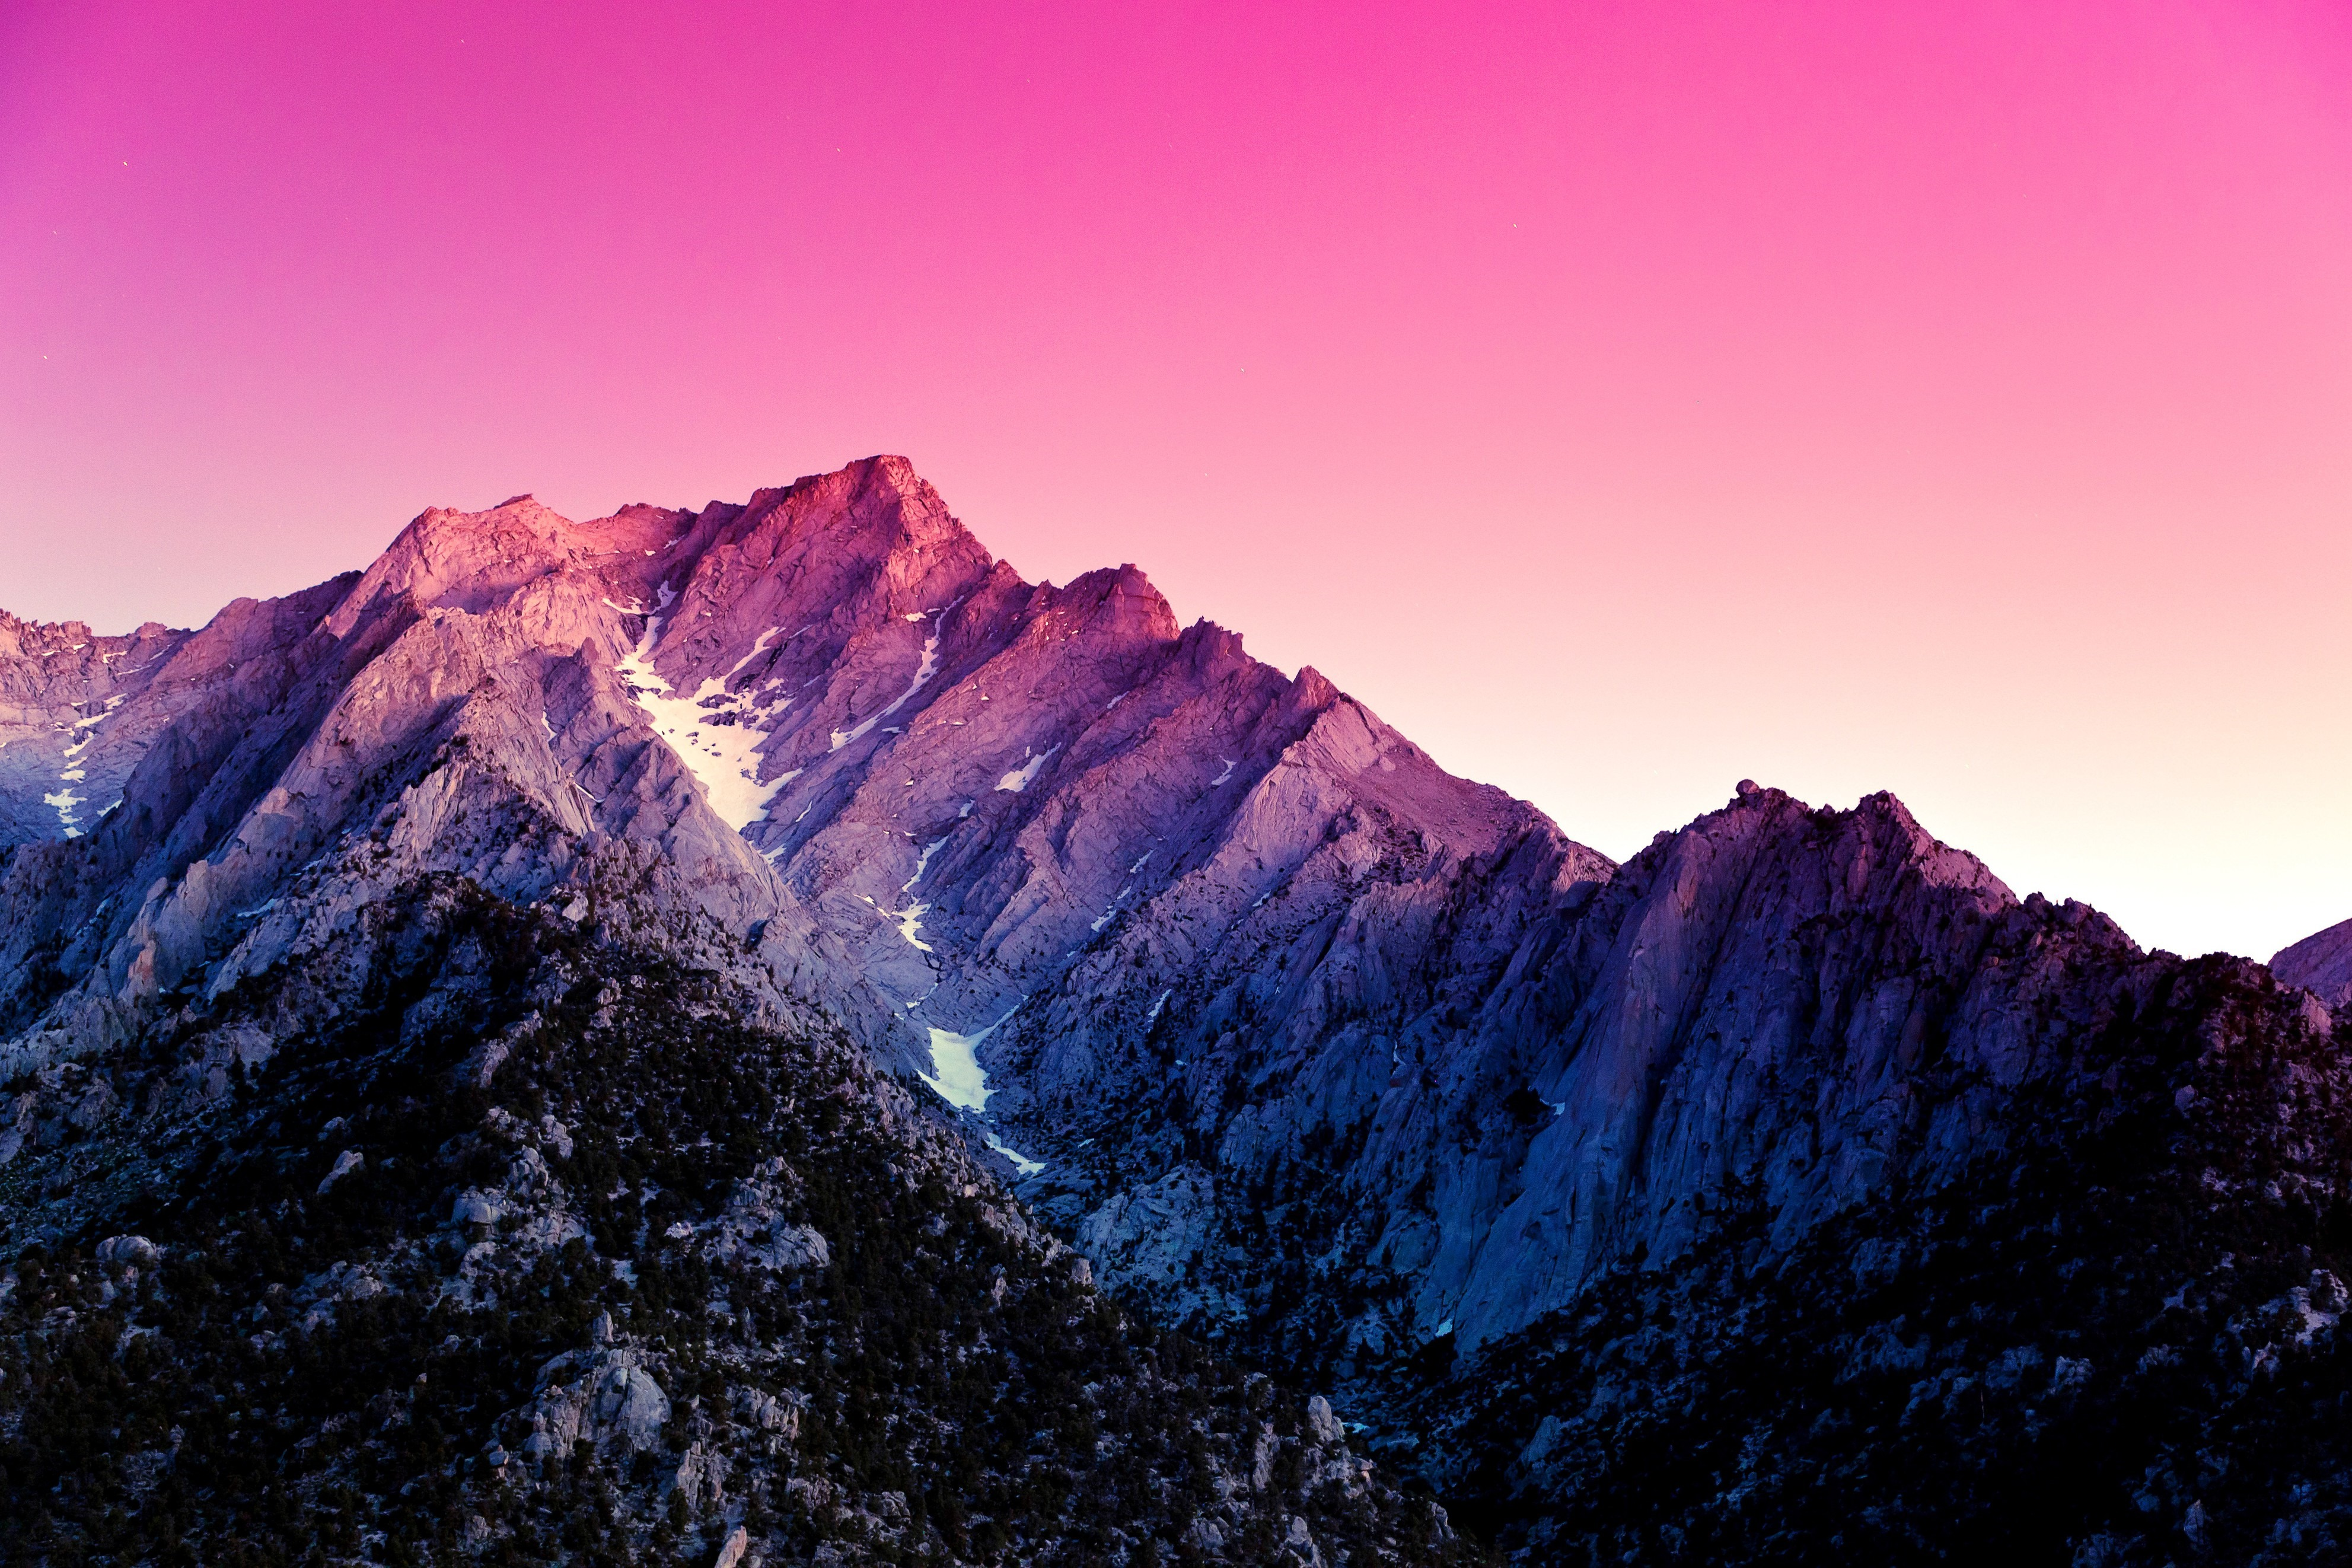 Purple Mountain Wallpaper